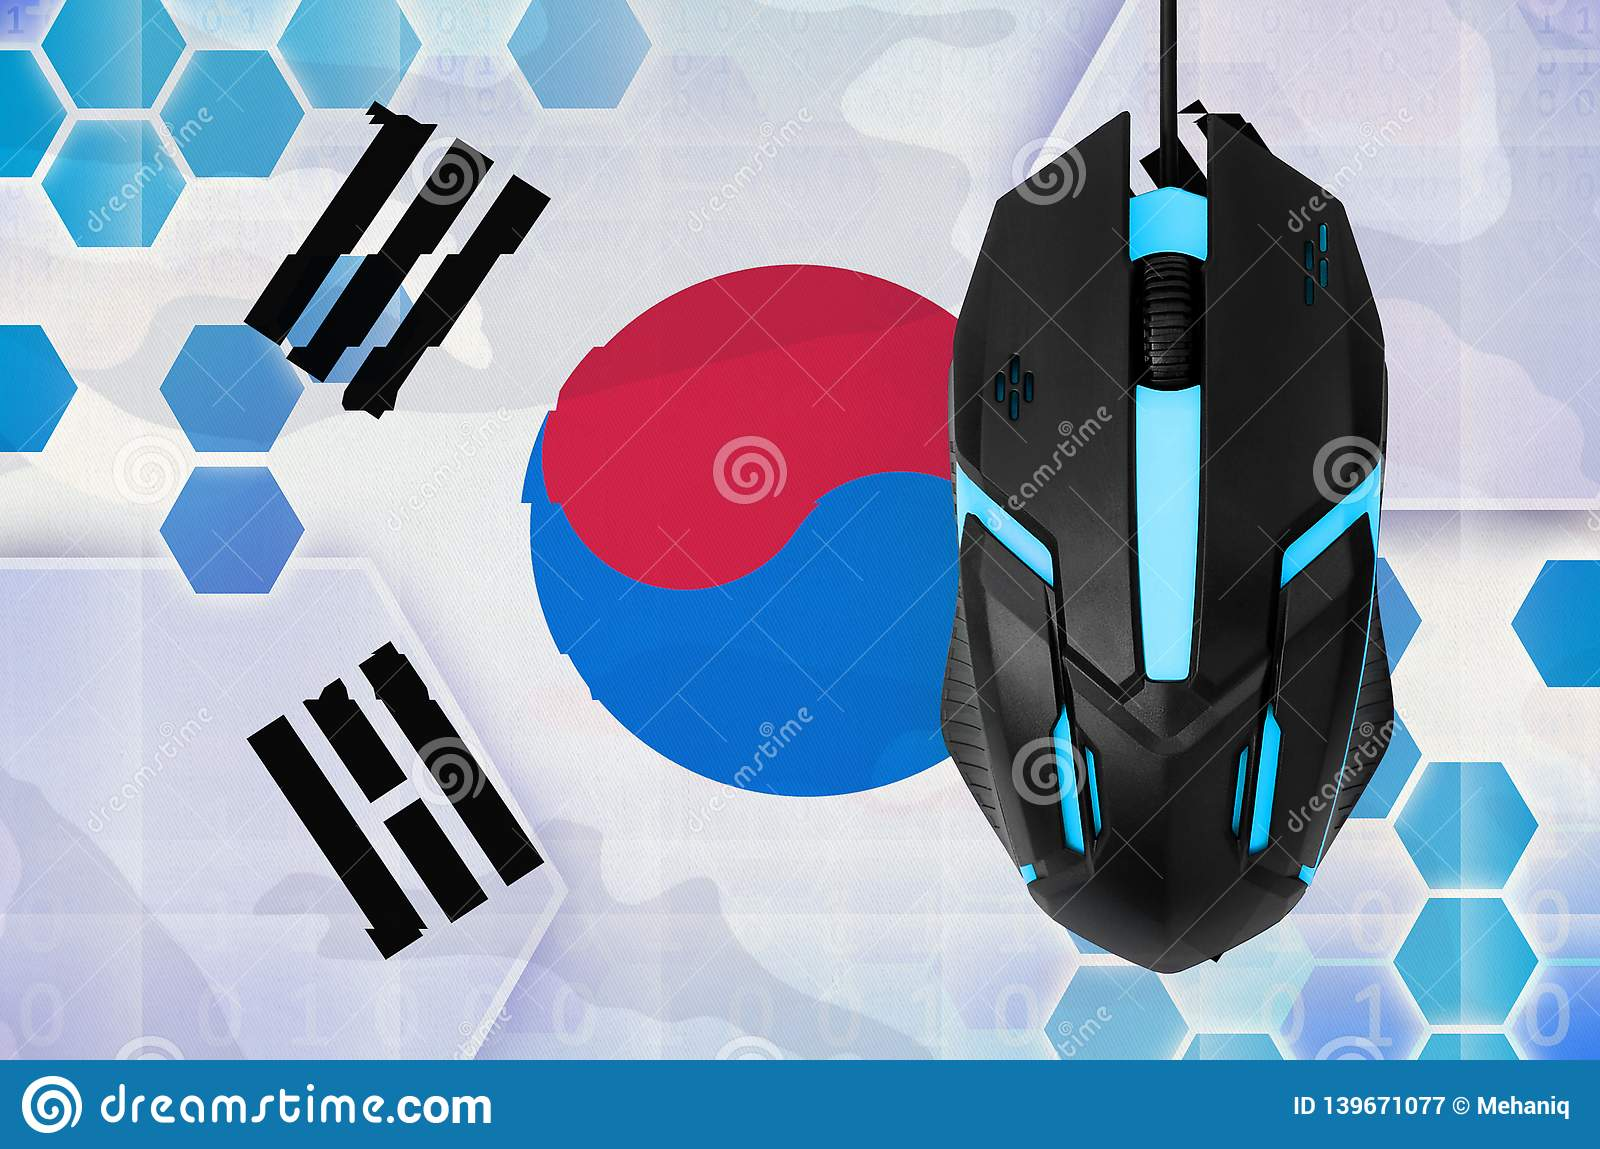 South Korea flag and computer mouse. Concept of country representing e-sports team